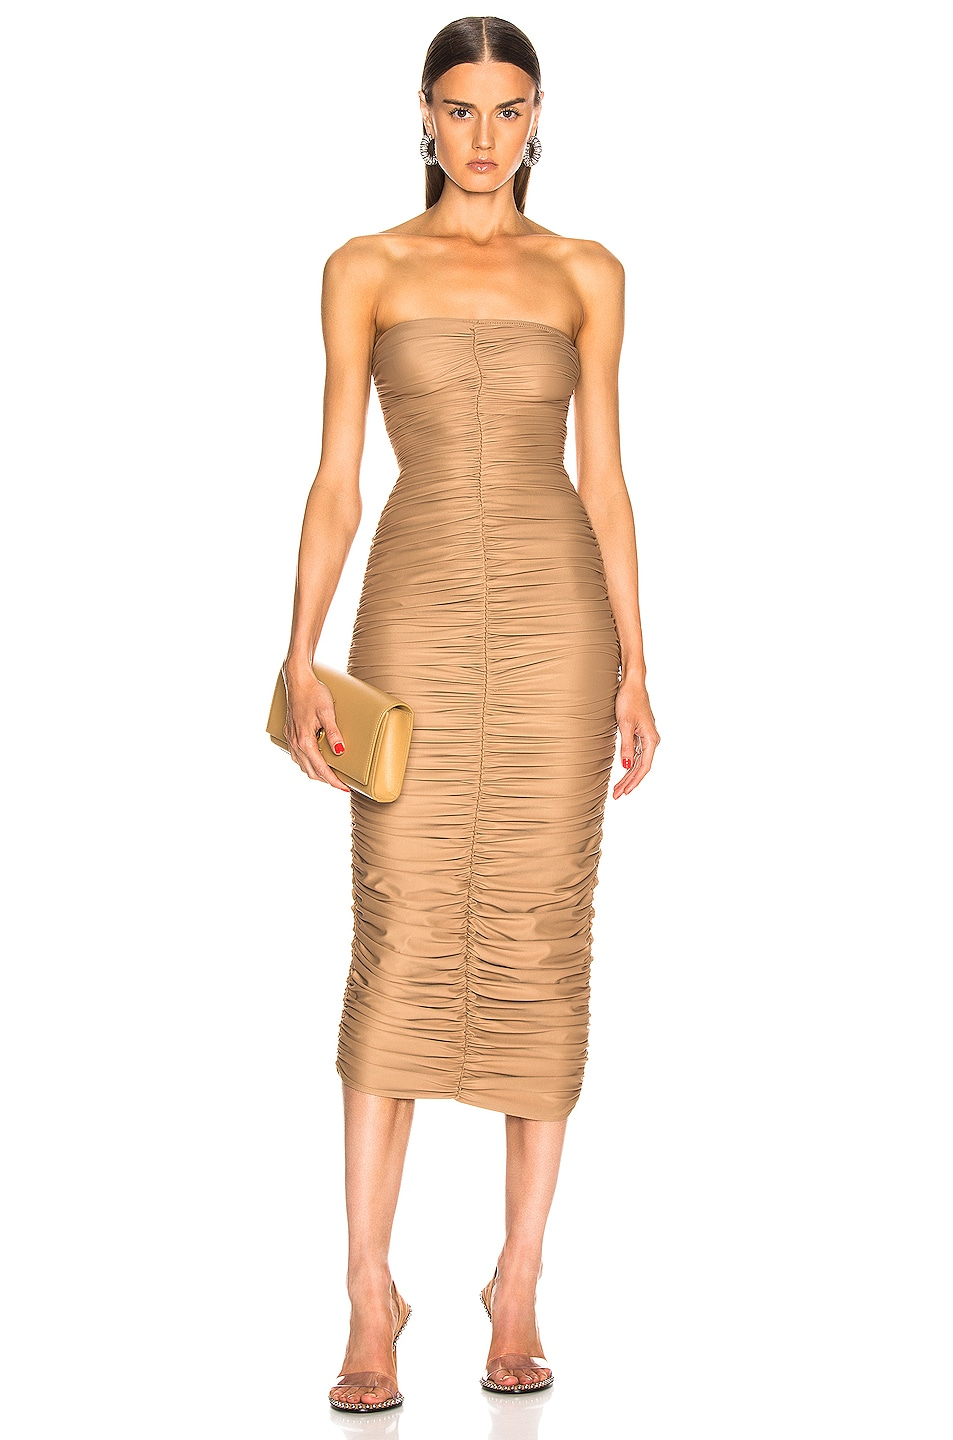 Image 1 of Norma Kamali Slinky Dress for FWRD in Suntan